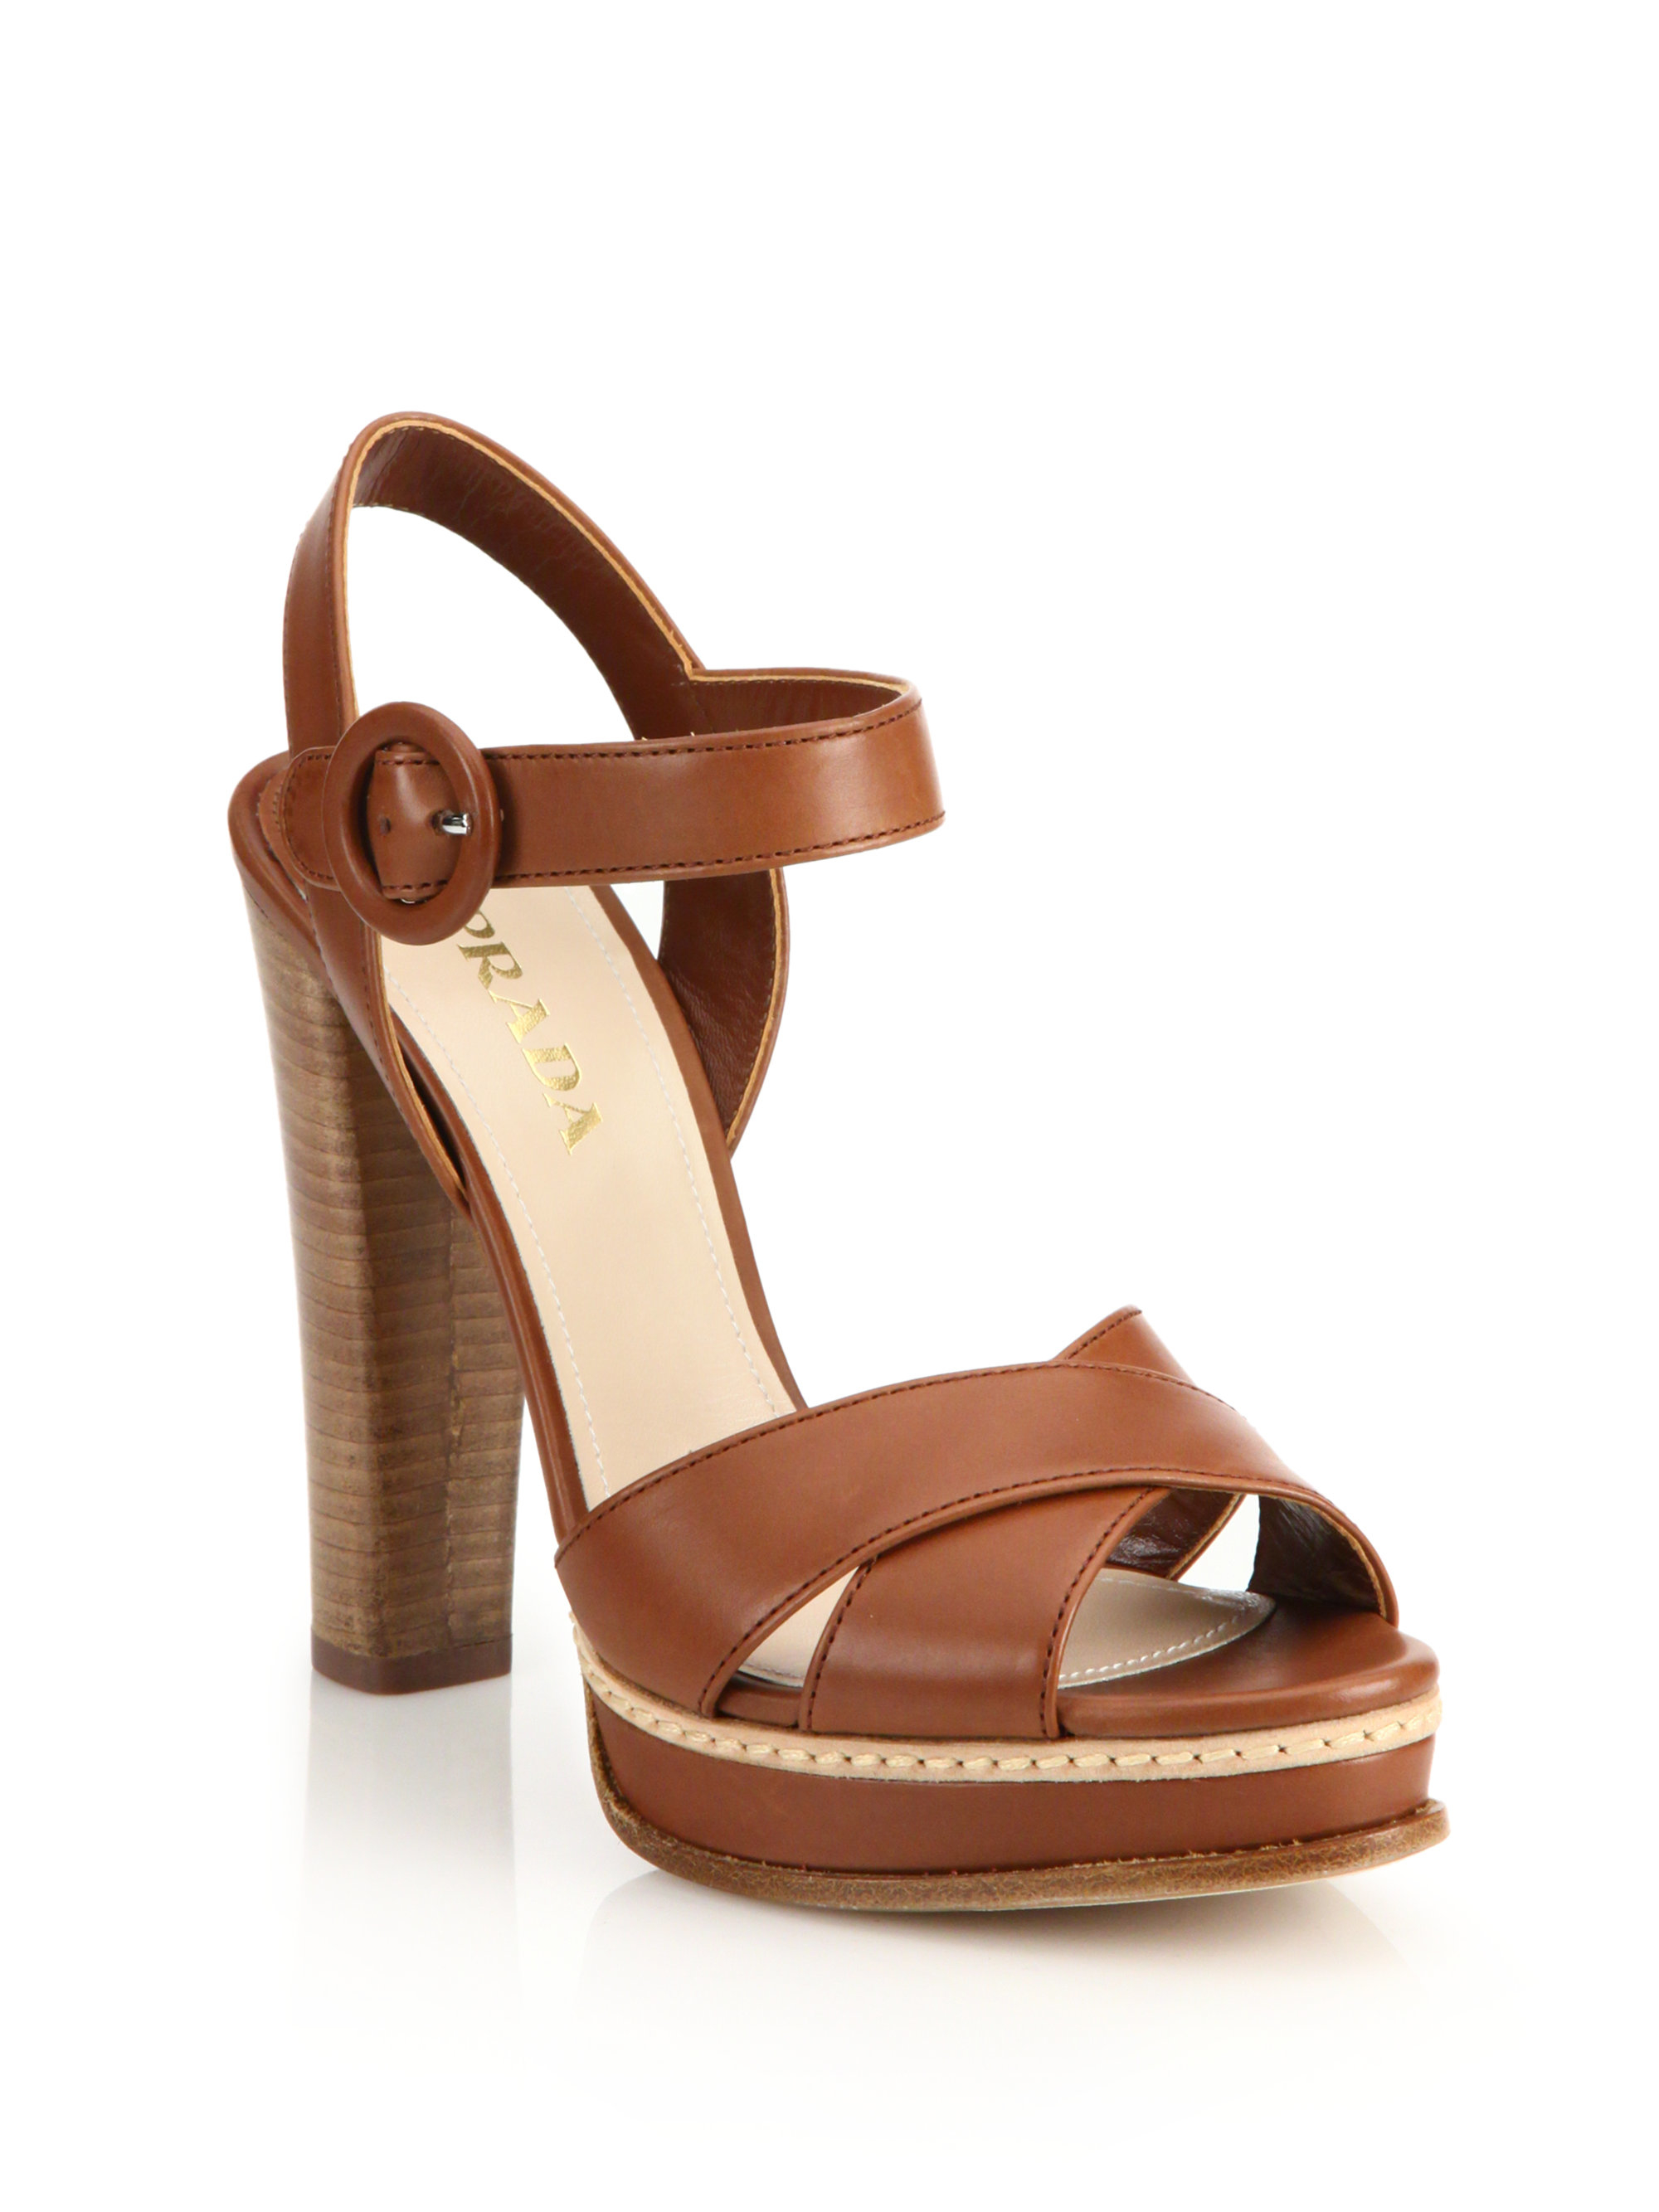 367082a54b1 Lyst - Prada Stacked Heel Leather Platform Sandals in Brown